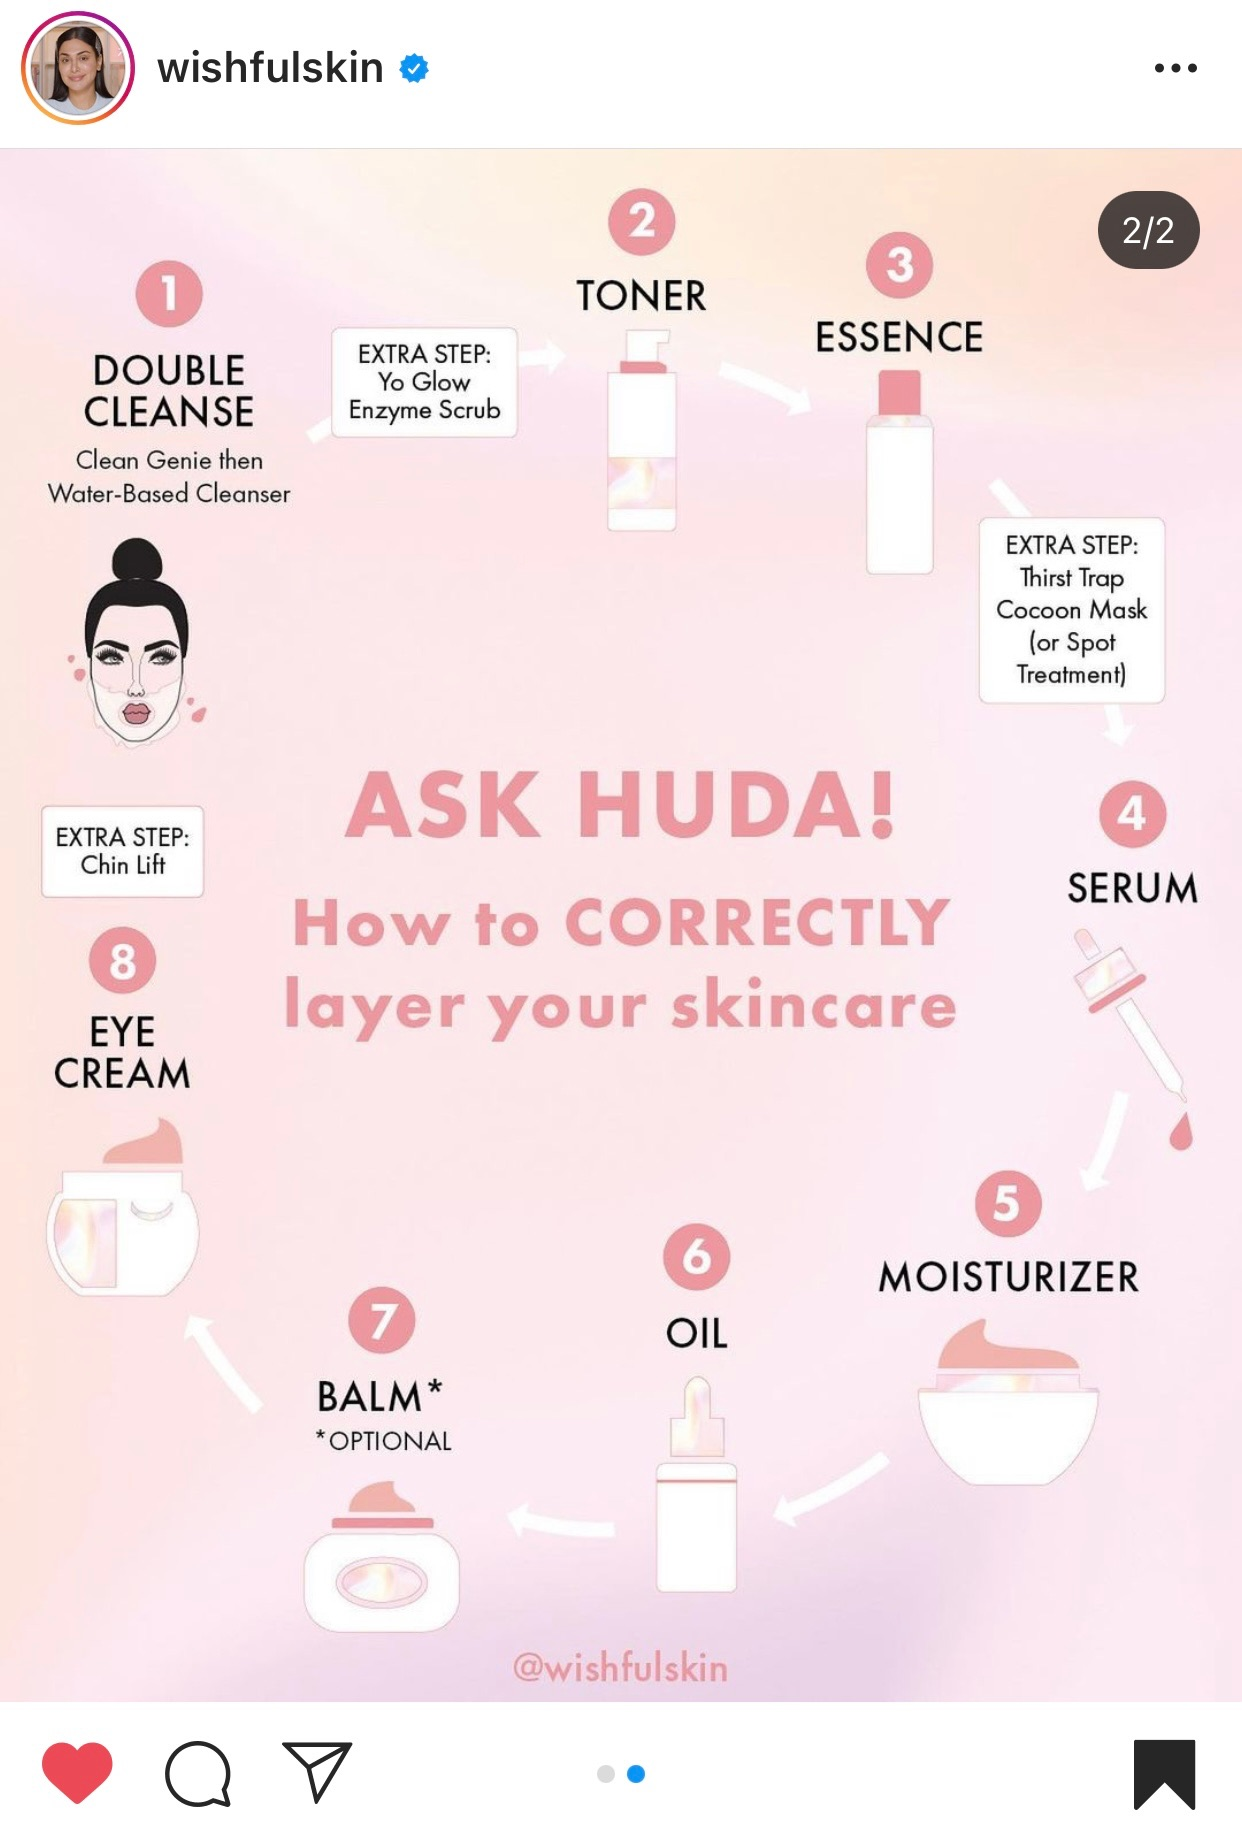 how to layer your skincare correctly from wishfulskin instagram